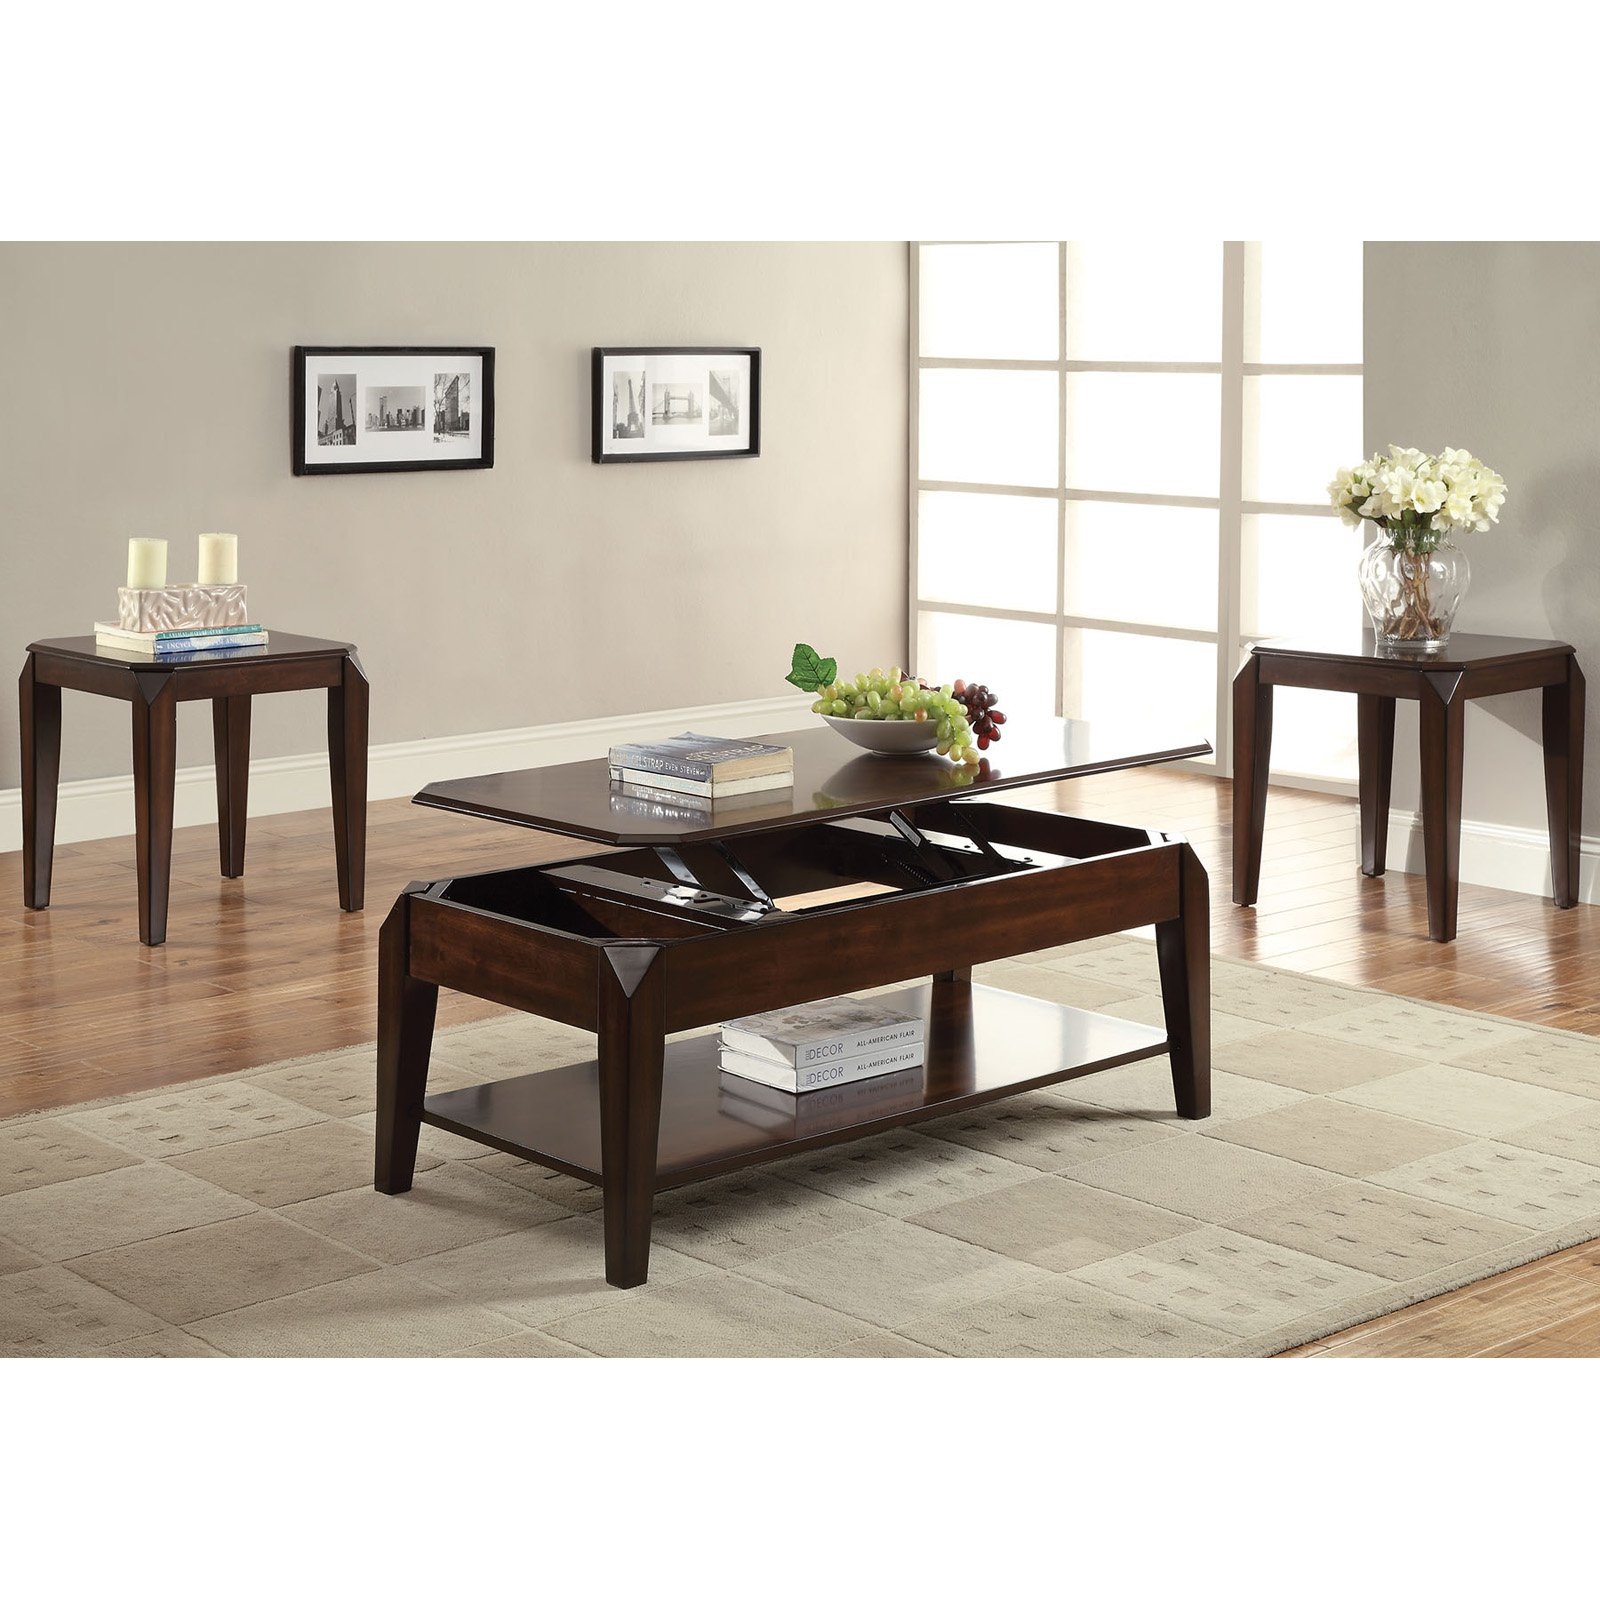 Acme Furniture Docila Walnut Coffee Table with Lift Top